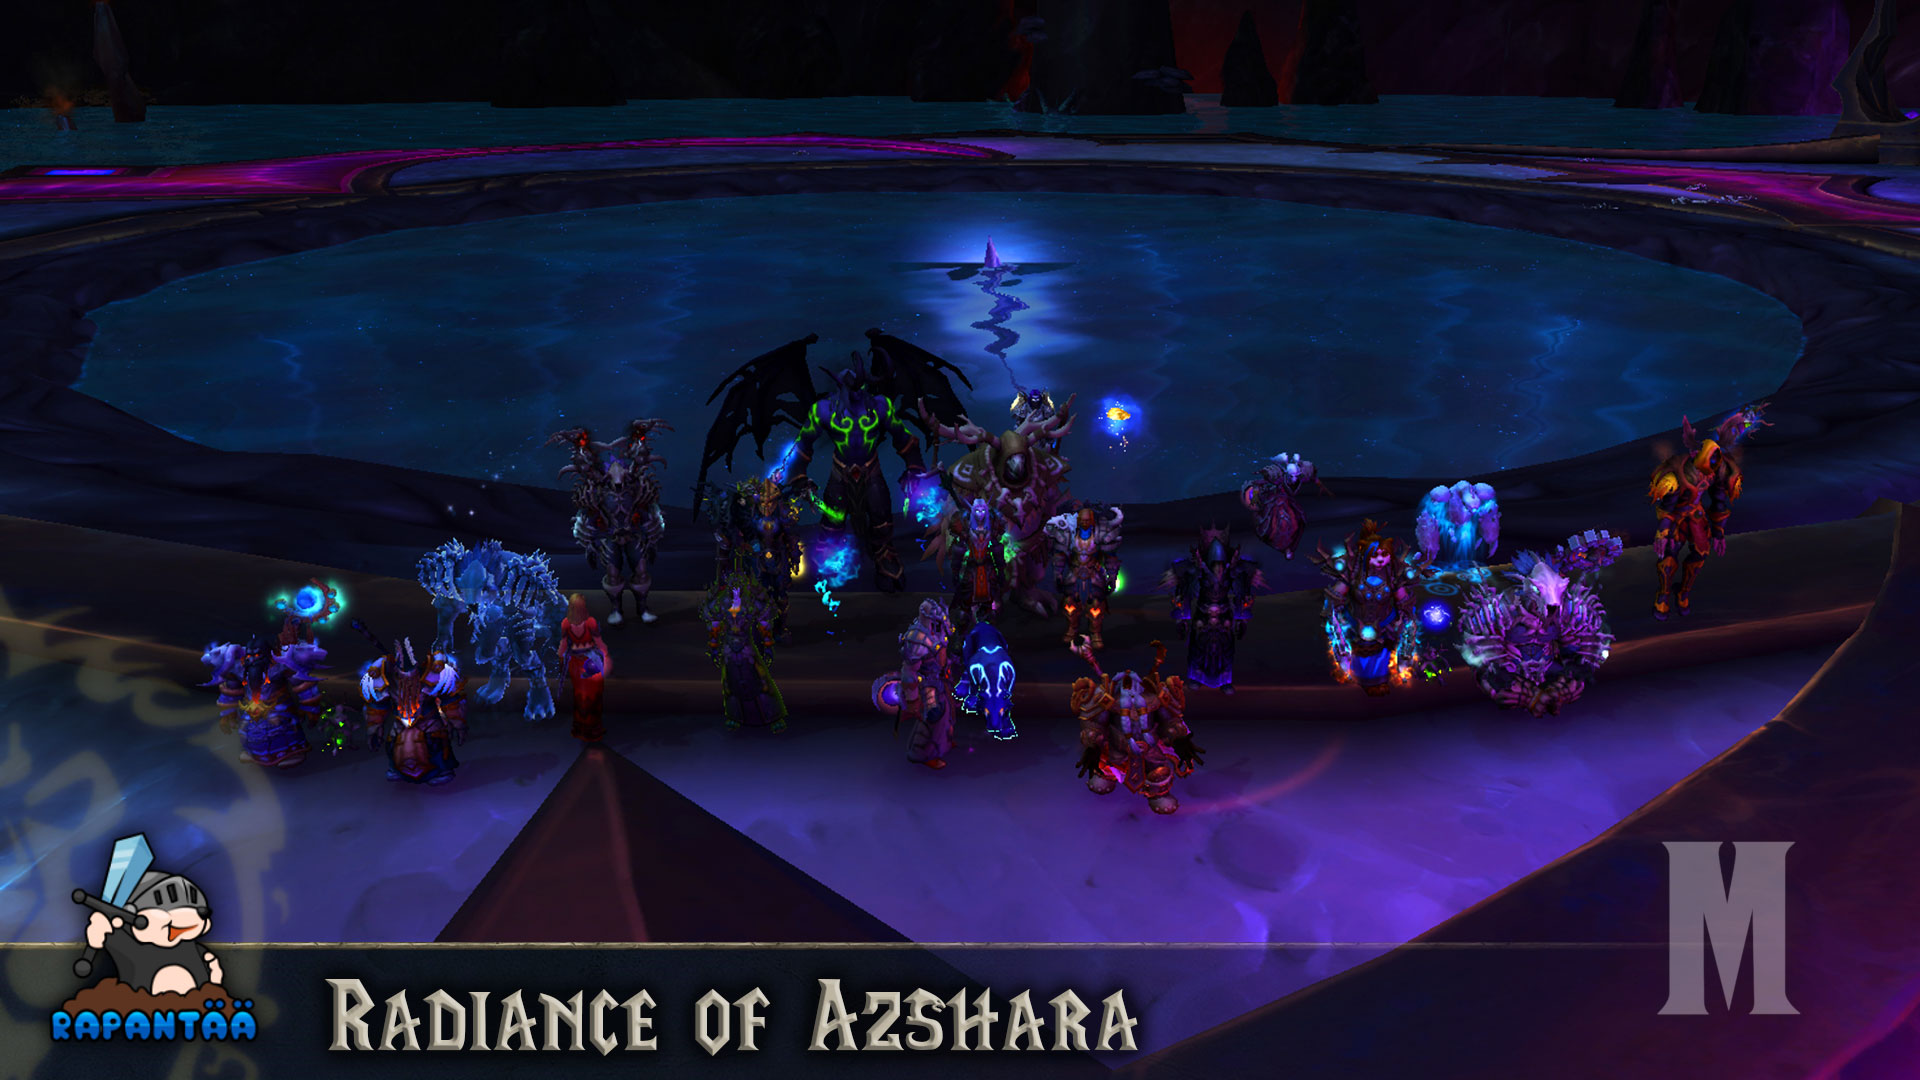 radiance-of-azshara-m-10.09.2019